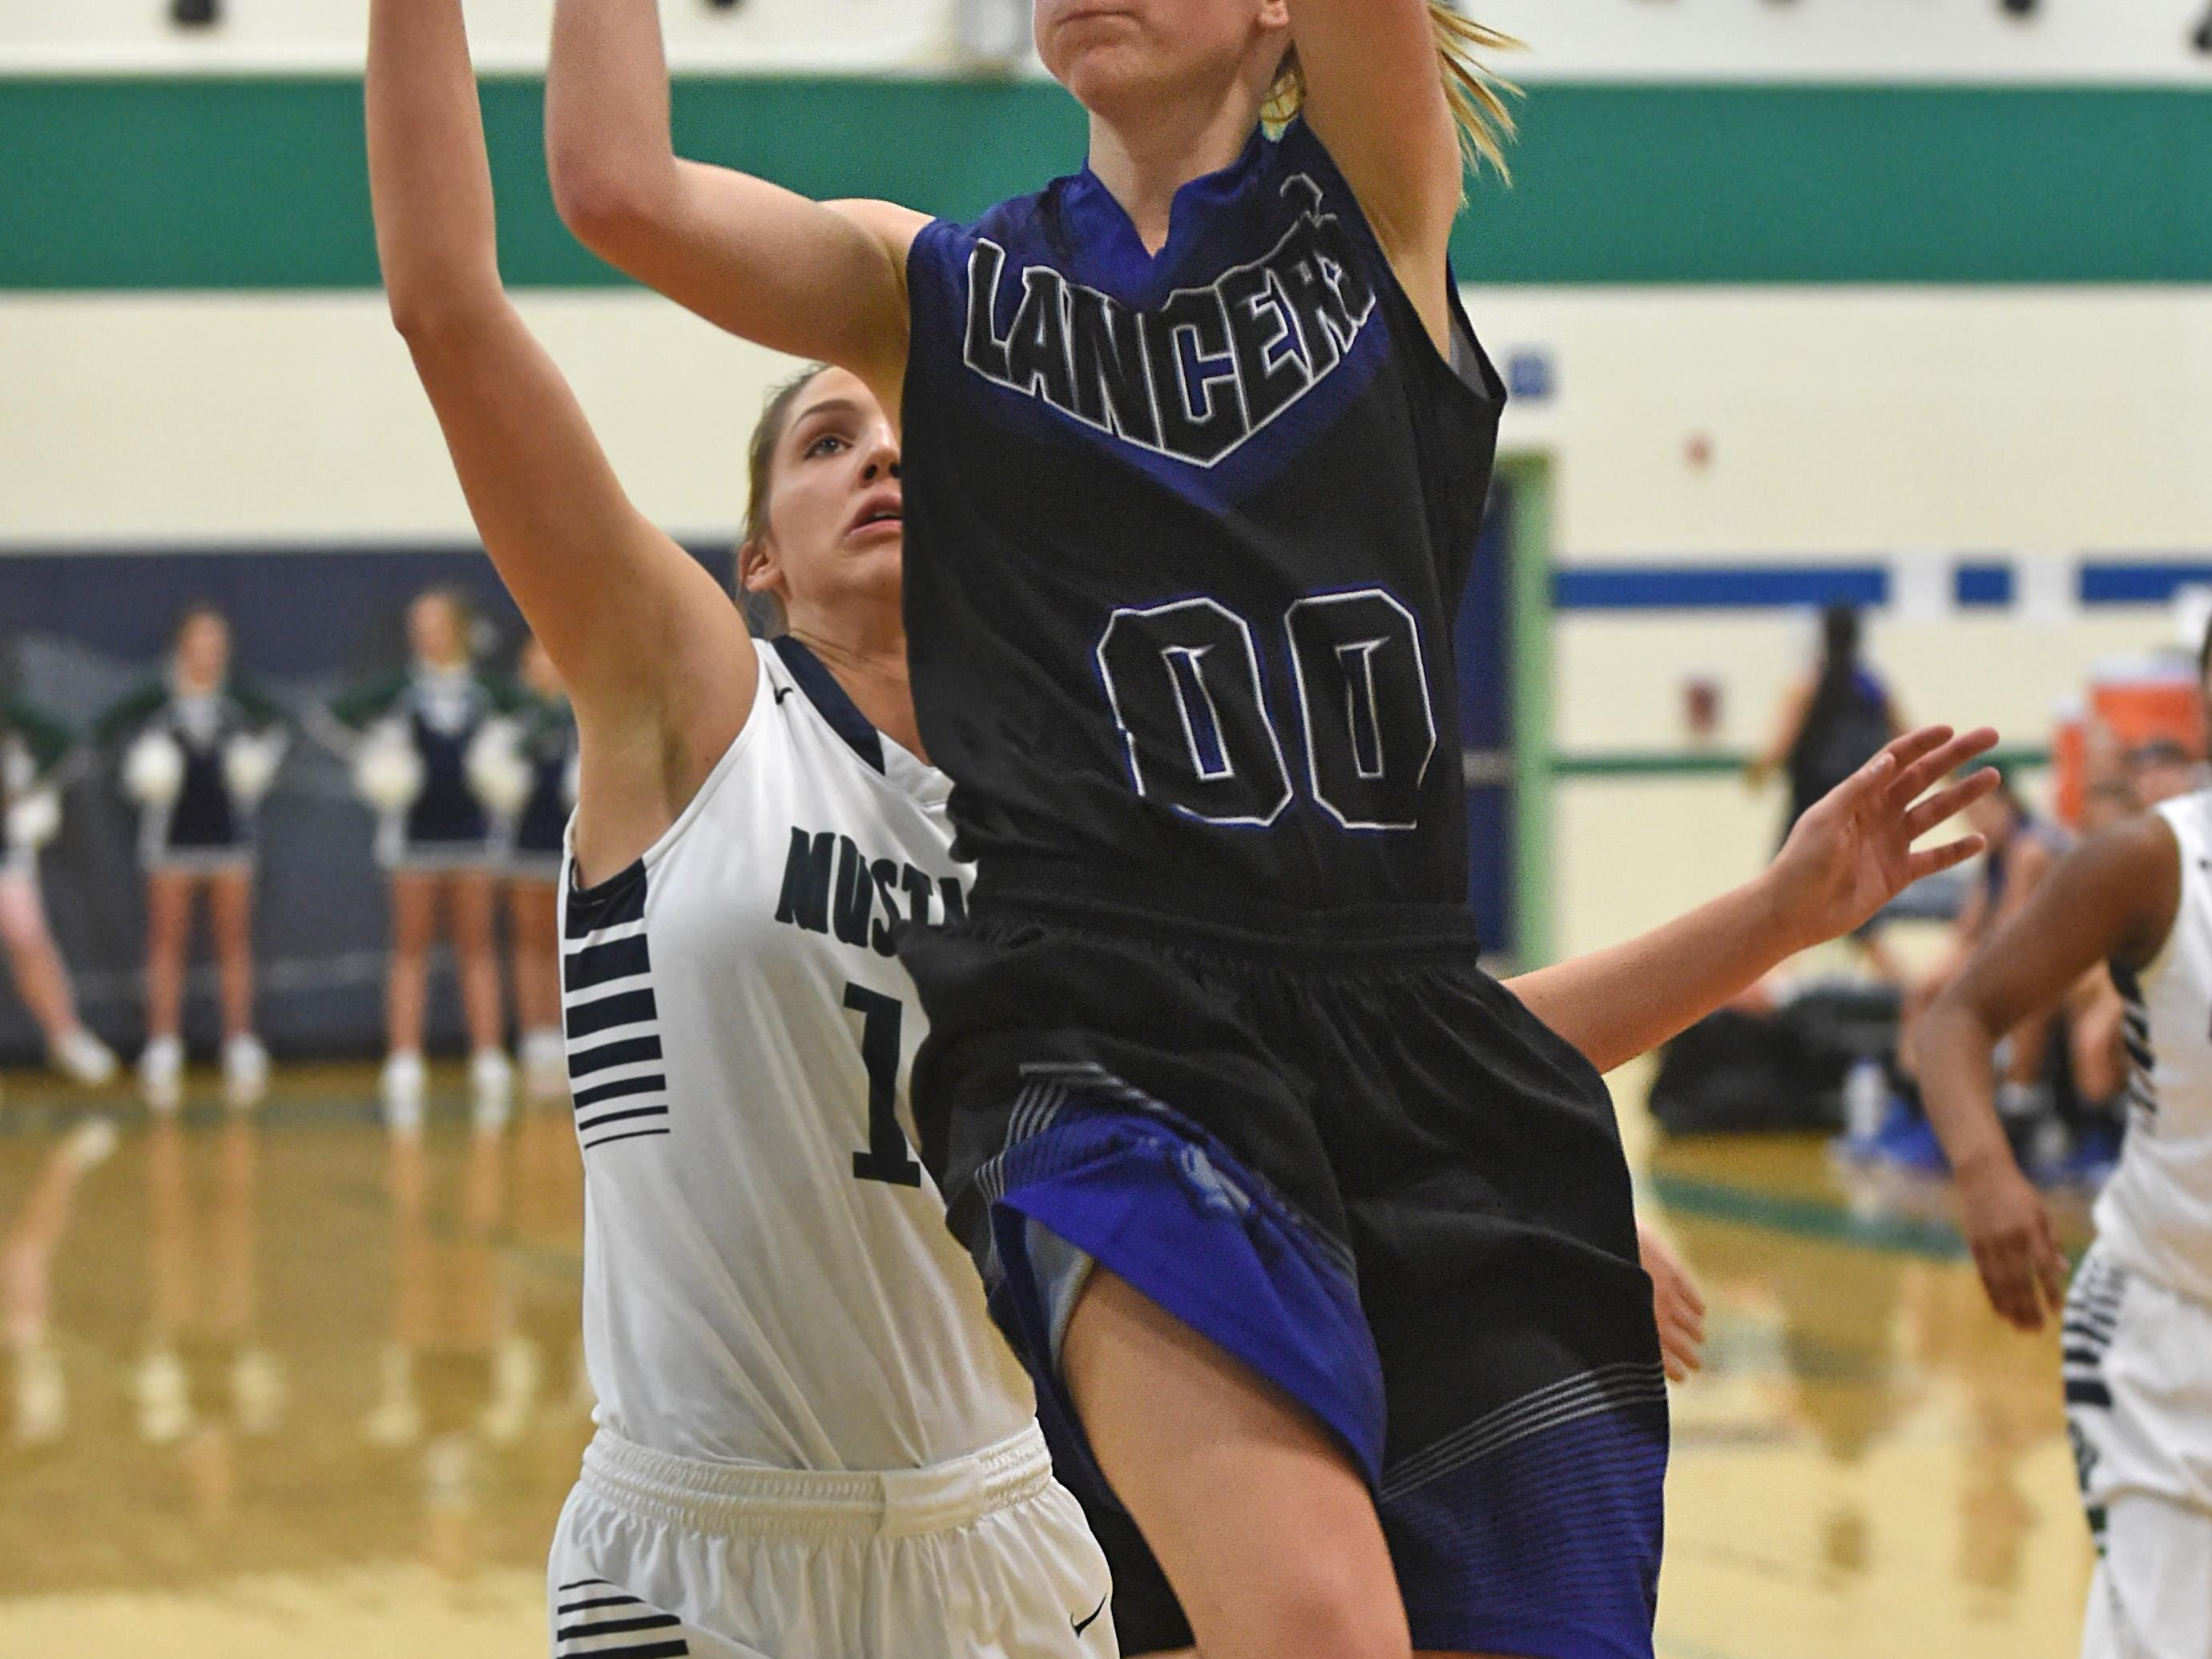 McQueen sophomore Izzy Warren goes up to score with Damonte's Morgan Waller covering her in Tuesday's game at Damonte Ranch High School.